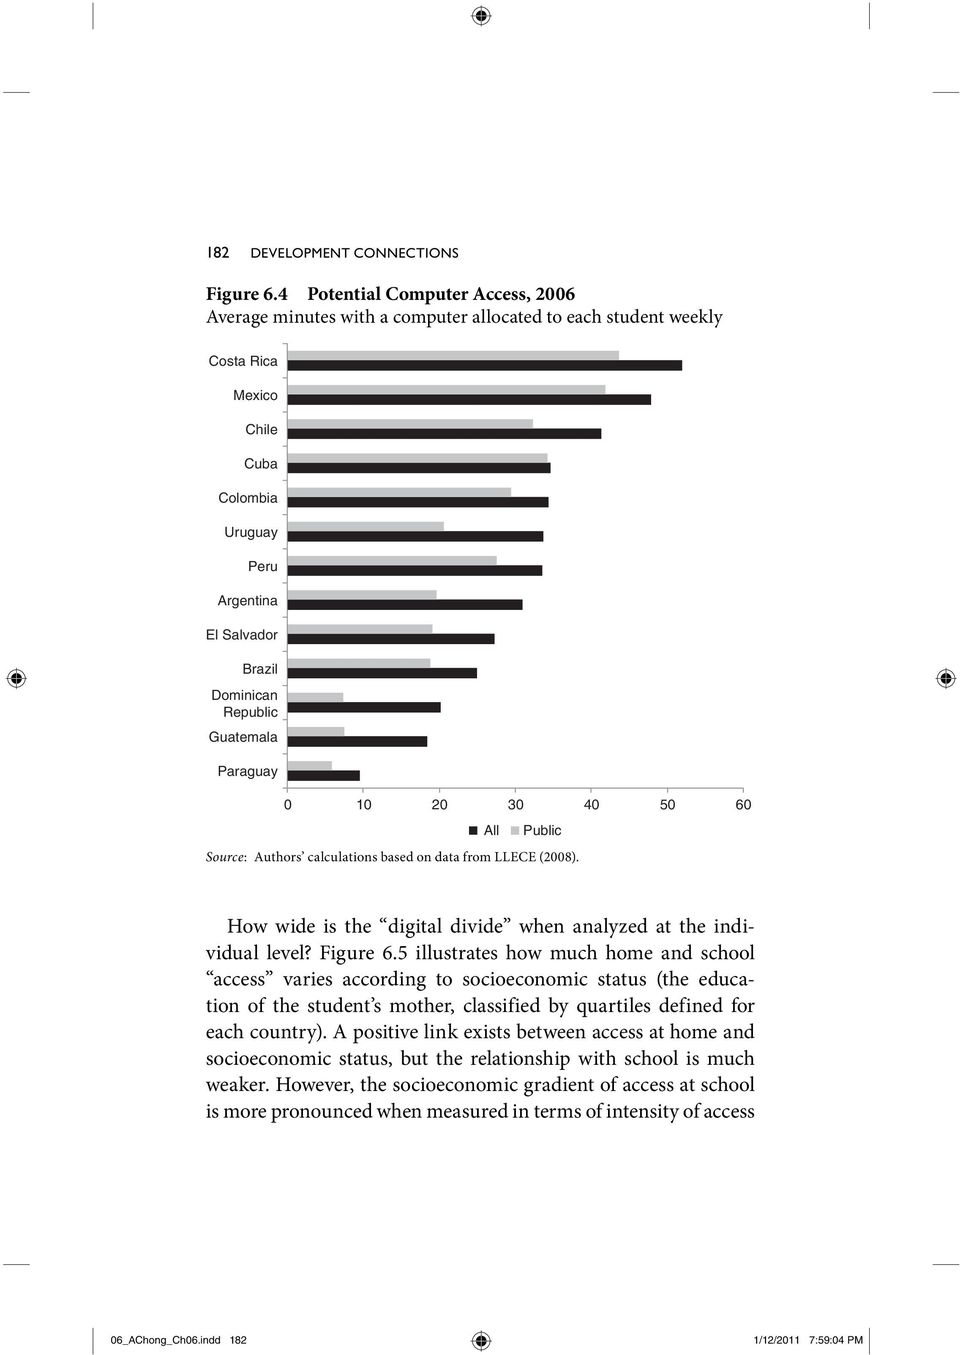 Guatemala Paraguay 0 10 20 30 40 50 60 Source: Authors calculations based on data from LLECE (2008). All Public How wide is the digital divide when analyzed at the individual level? Figure 6.